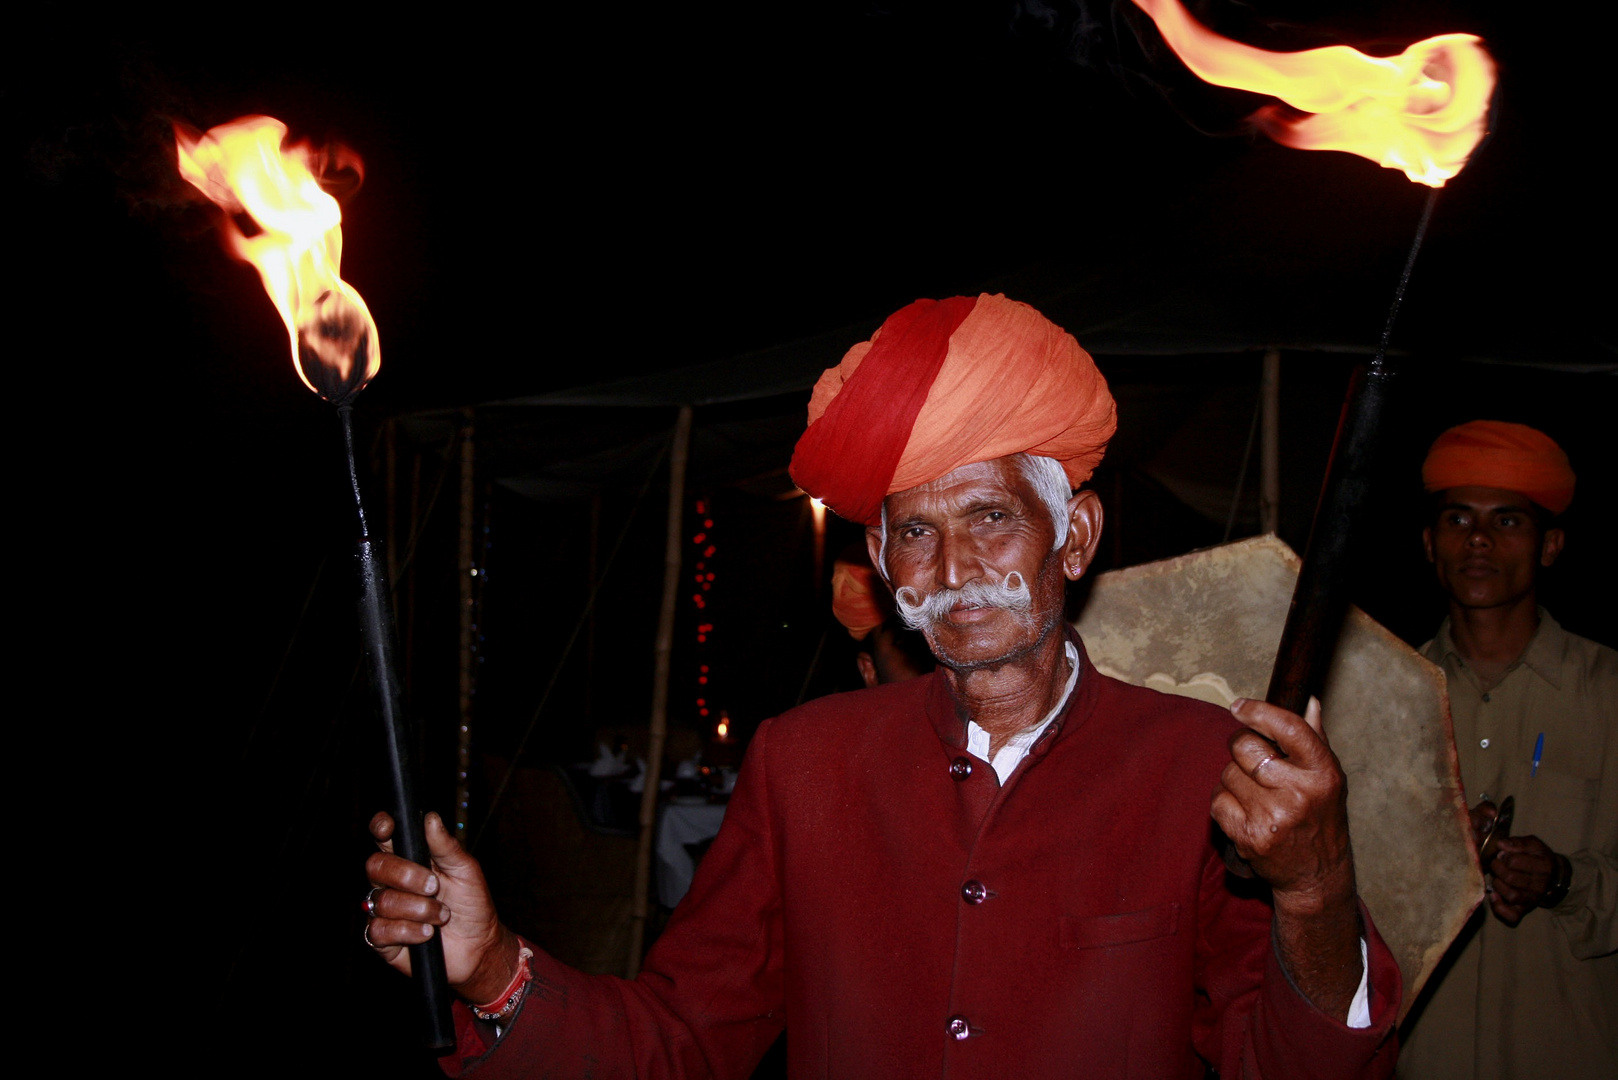 Fire of Rajasthan